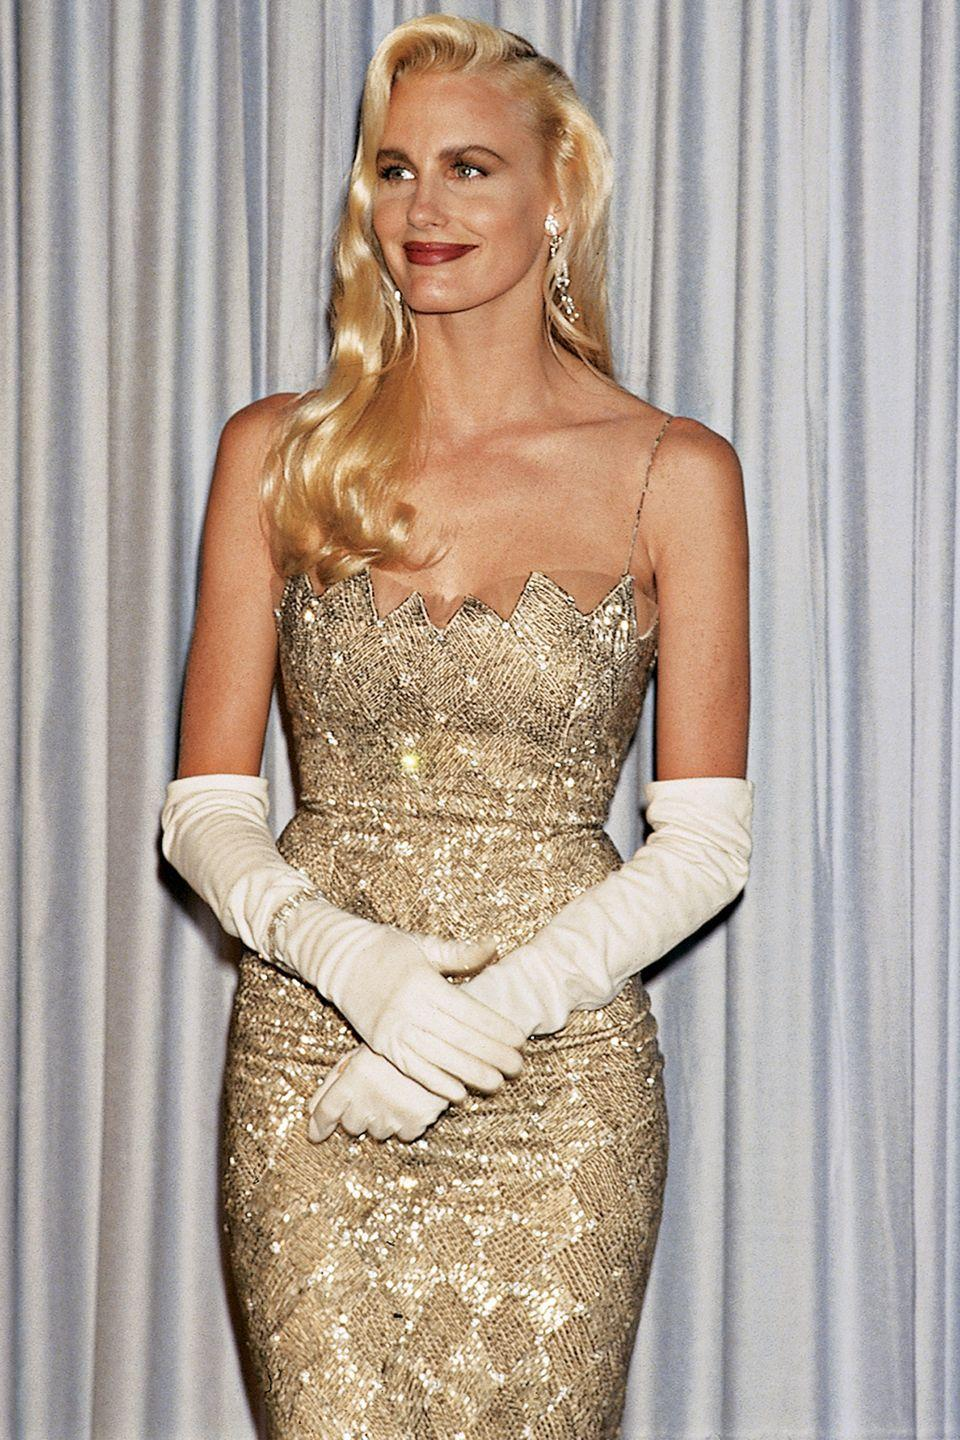 <p>While the popularity of elbow-length gloves was waning, they made even more of a statement when Daryl Hannah paired them with her glamorous gold dress and long blonde waves. </p>